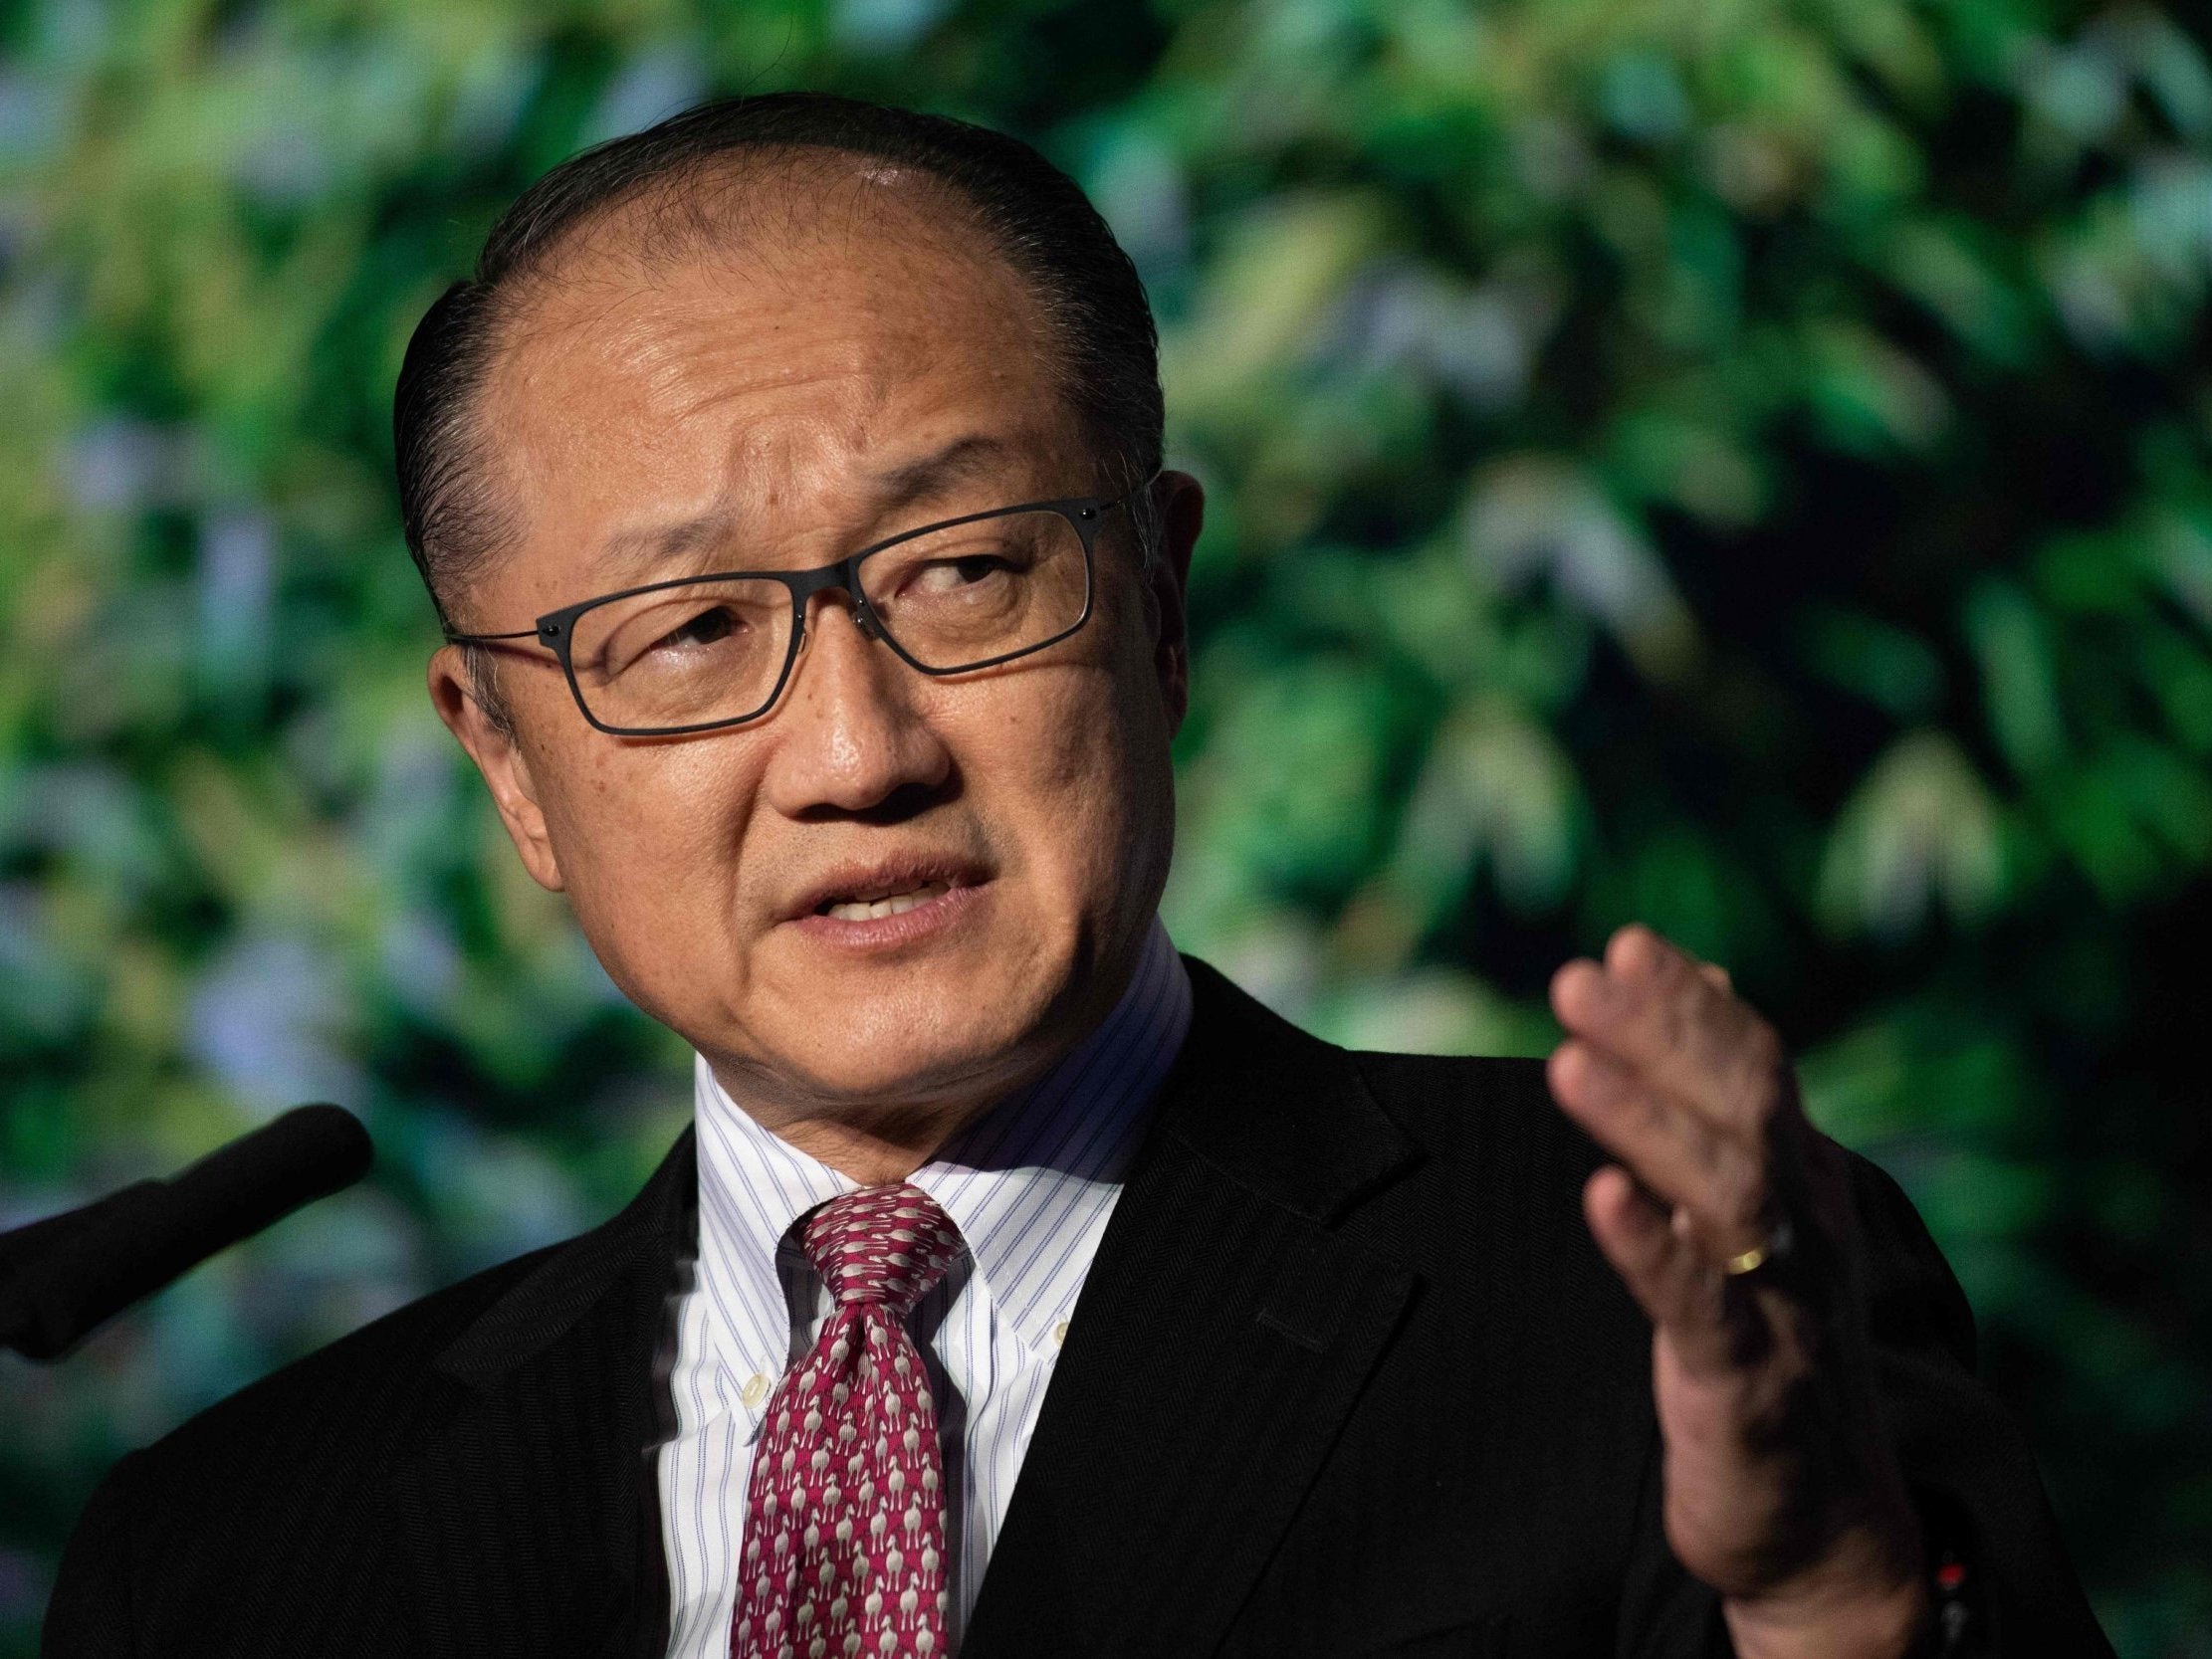 World Bank - latest news, breaking stories and comment - The